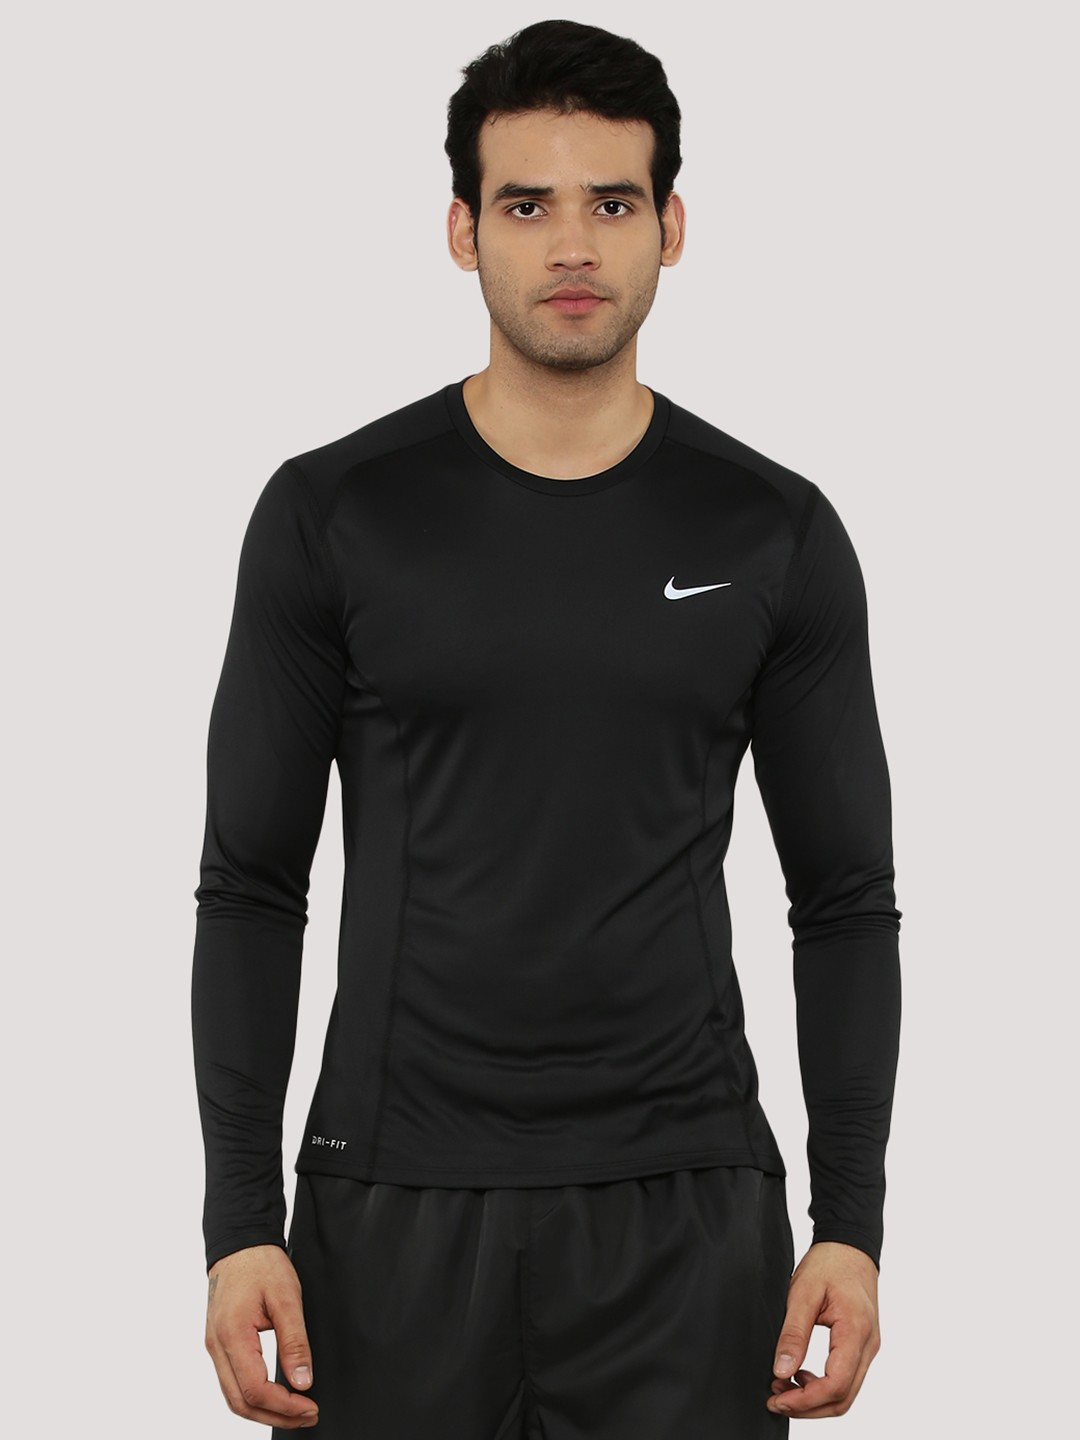 Buy Nike Dri Fit Miller Full Sleeves T Shirt For Men Men